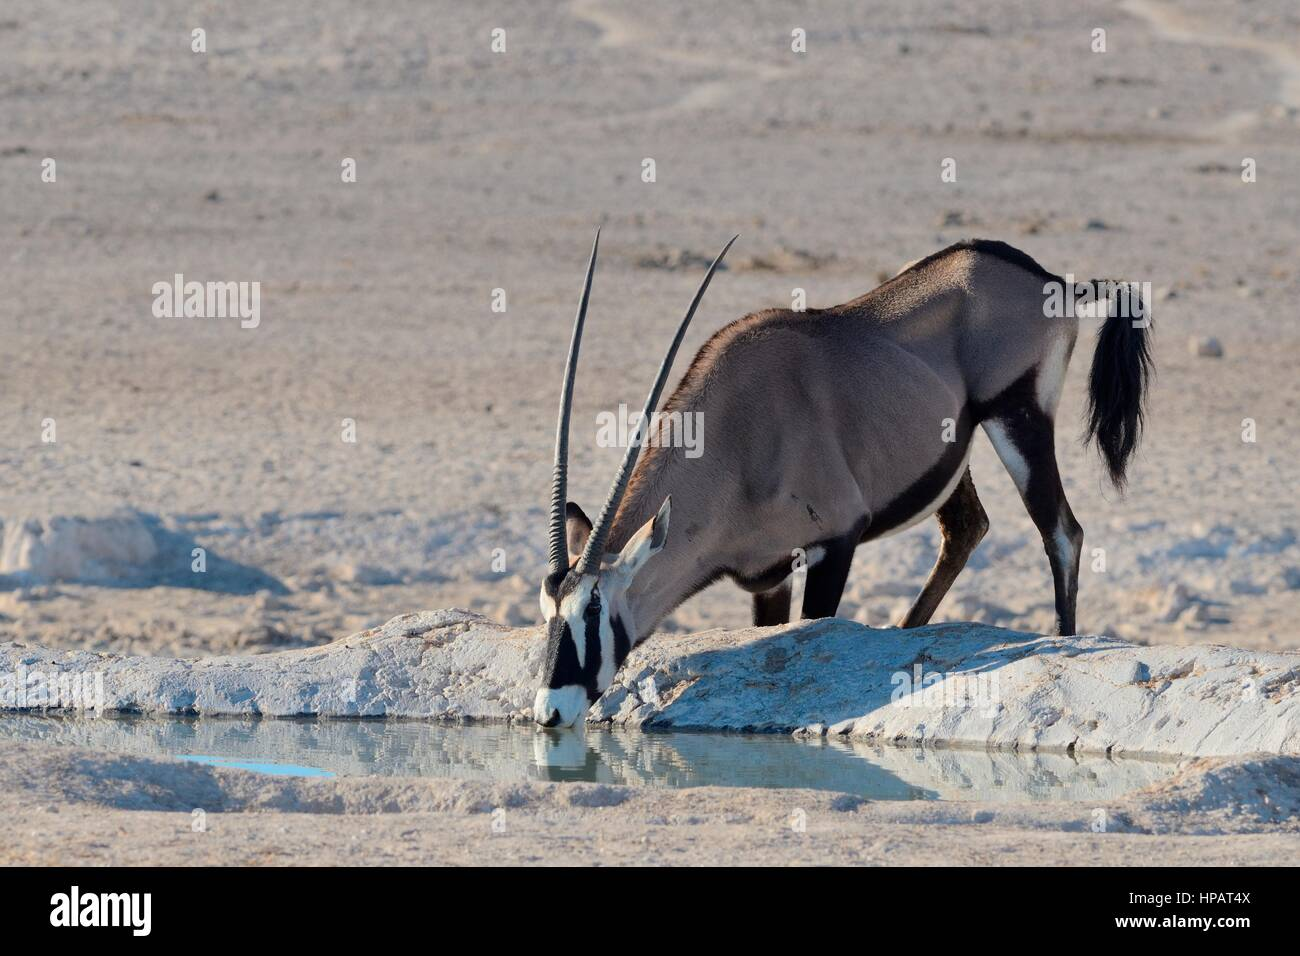 Gemsbok (Oryx gazella), boire à Waterhole, Etosha National Park, Namibie, Afrique Photo Stock